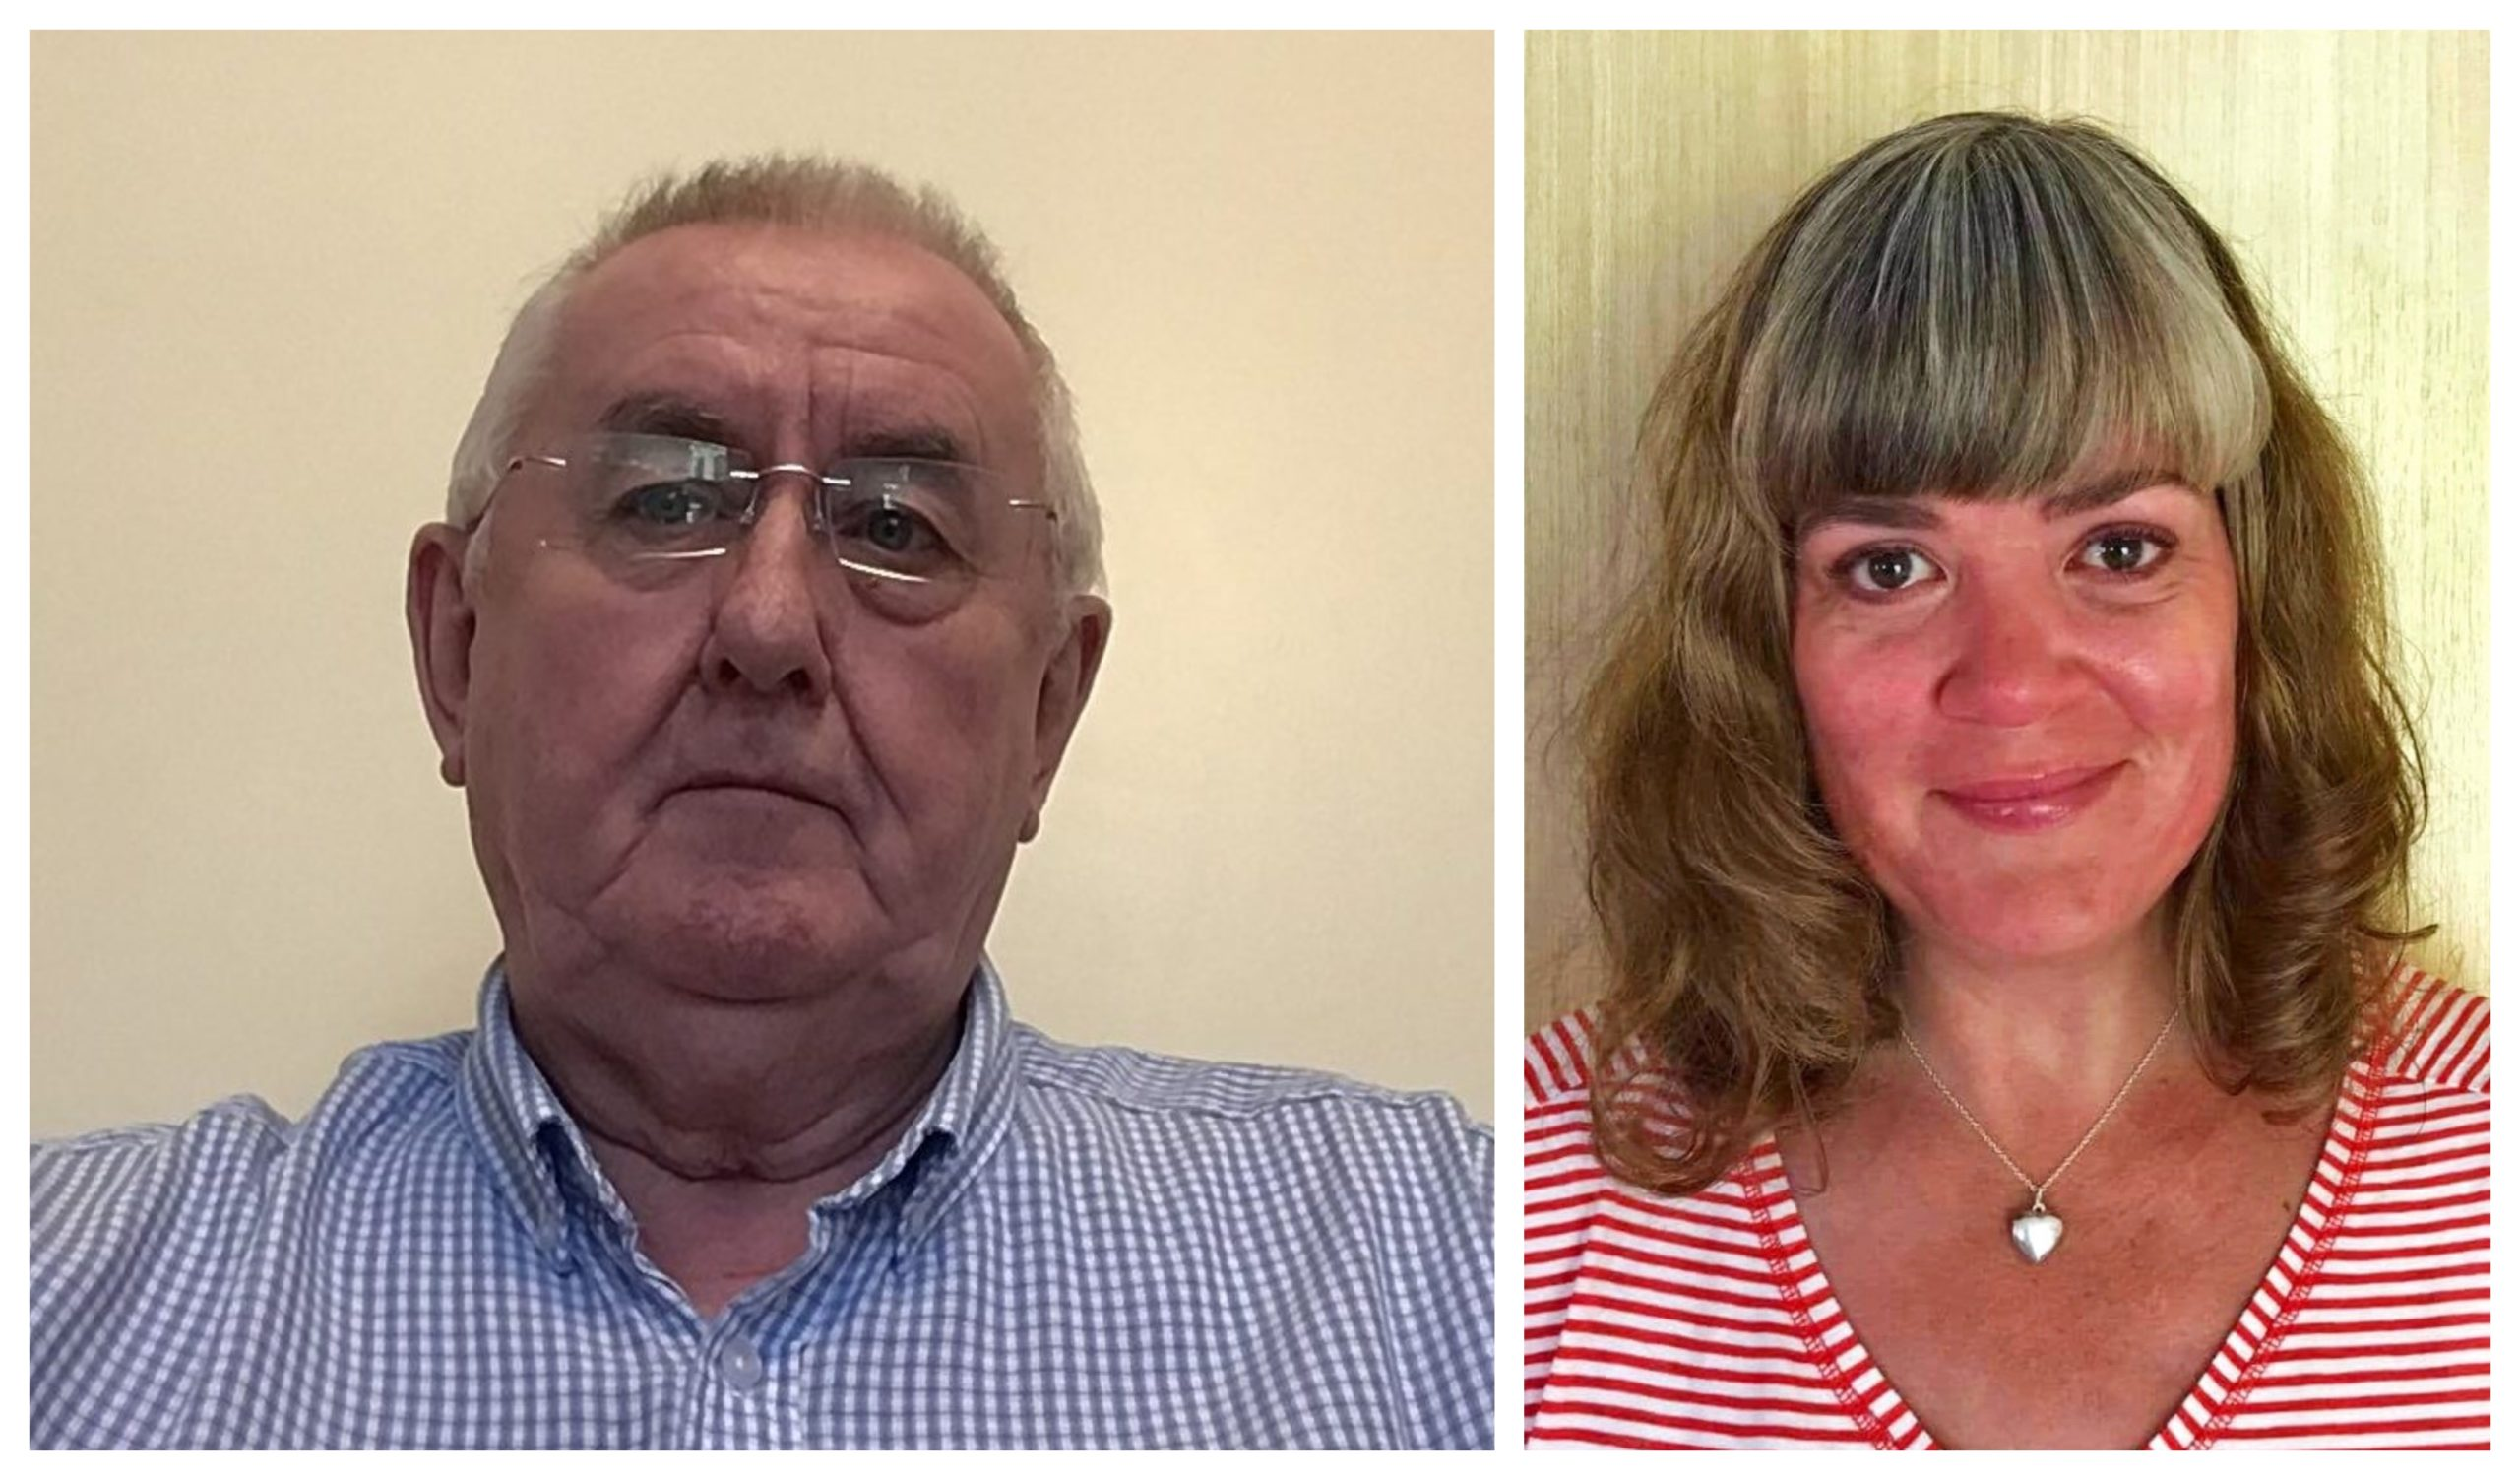 WINNERS: George O'Connor from Buckie and Claire Nicholson, from Lerwick.